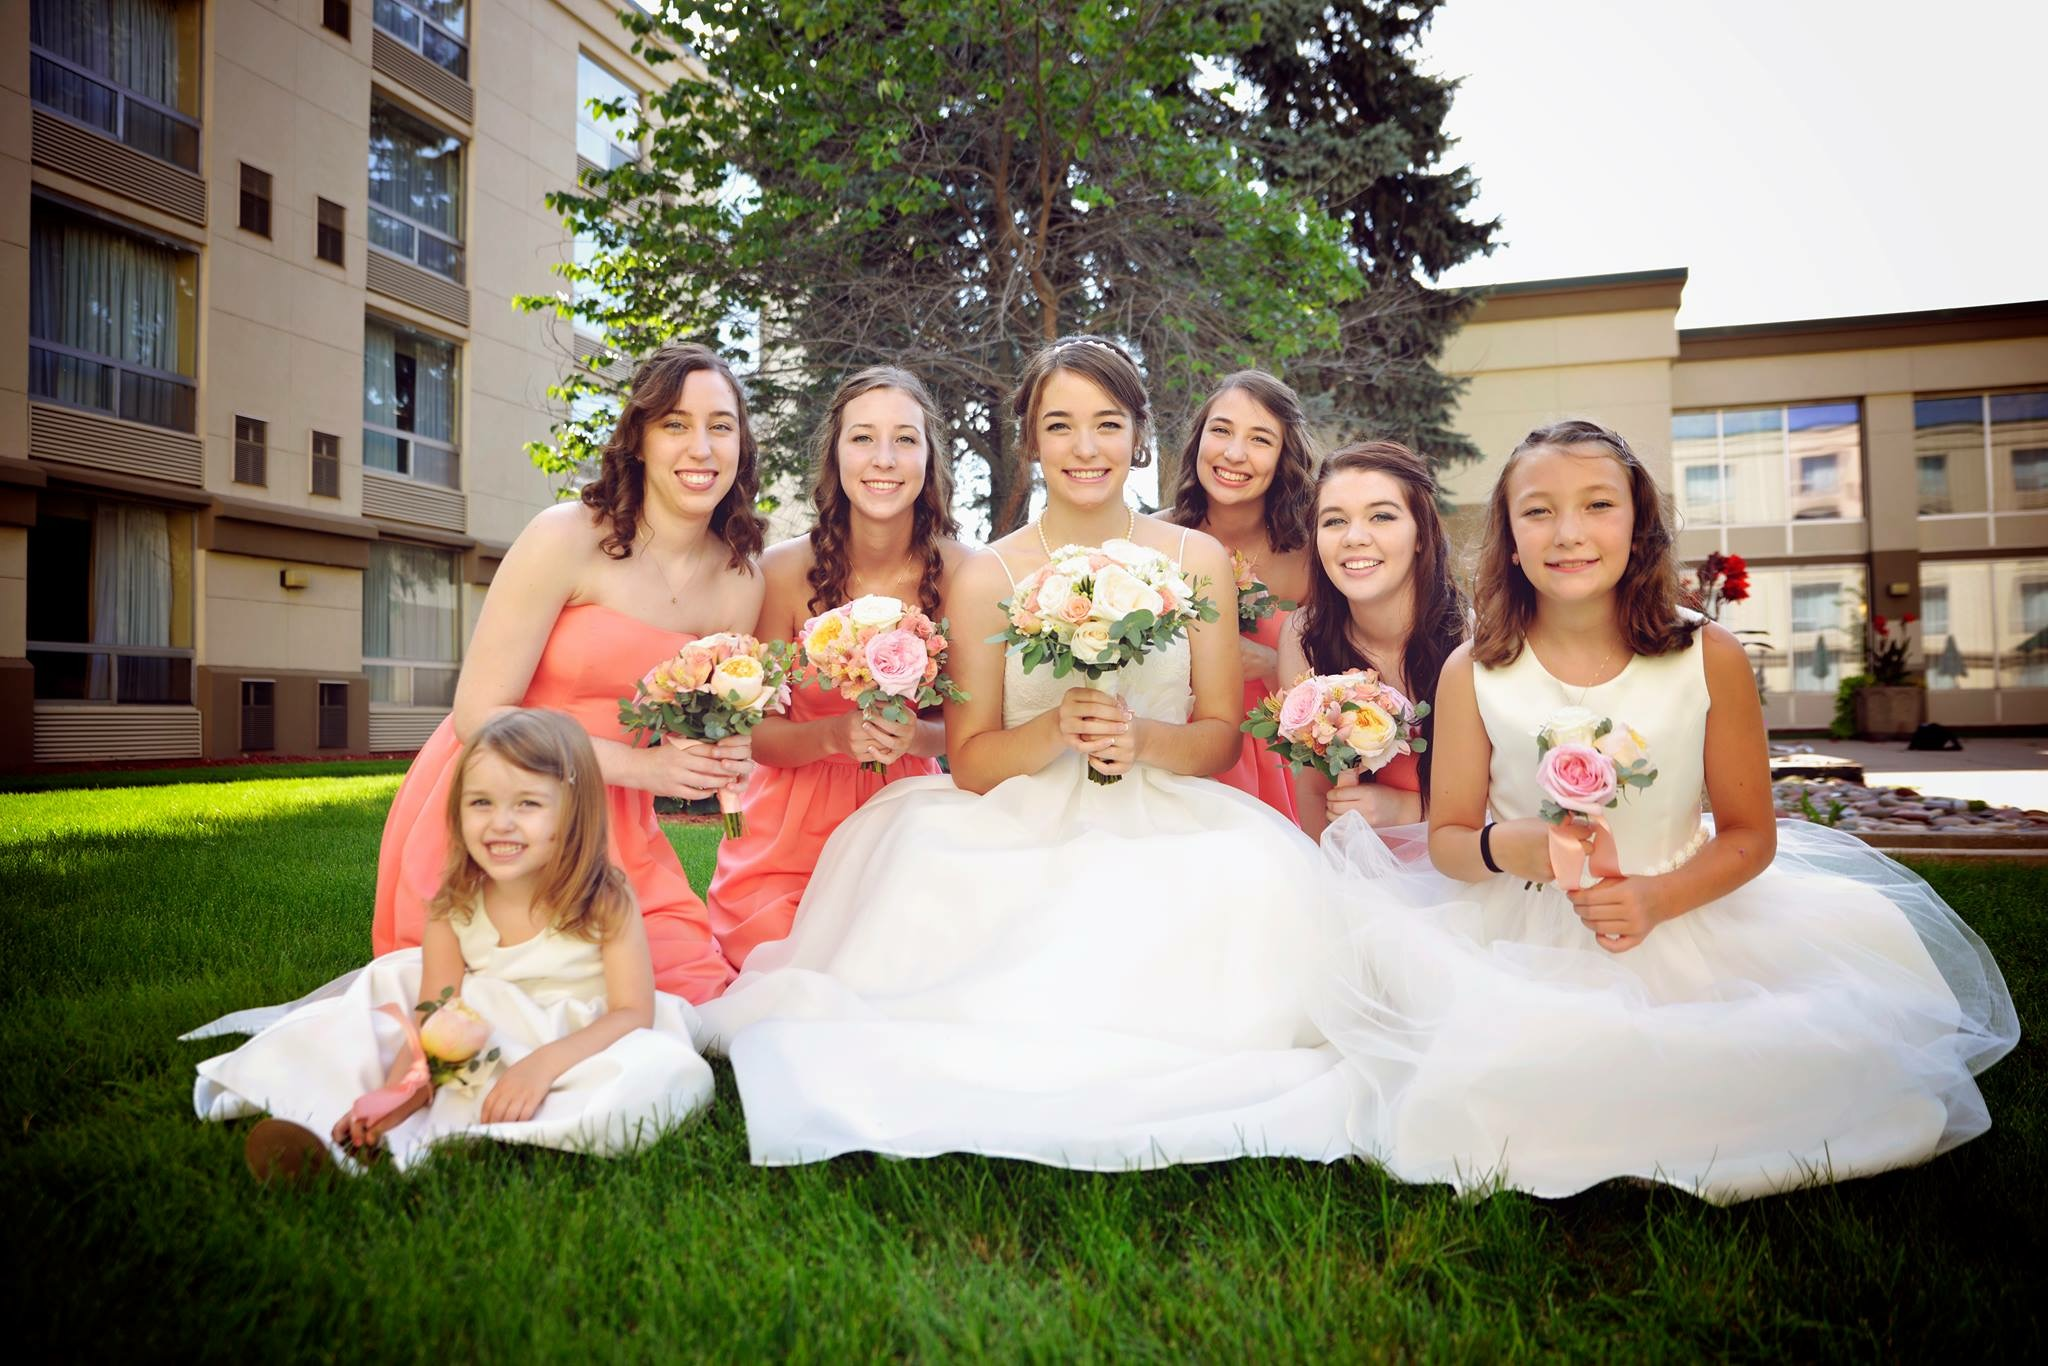 women-and-girls-posing-with-wedding-flowers